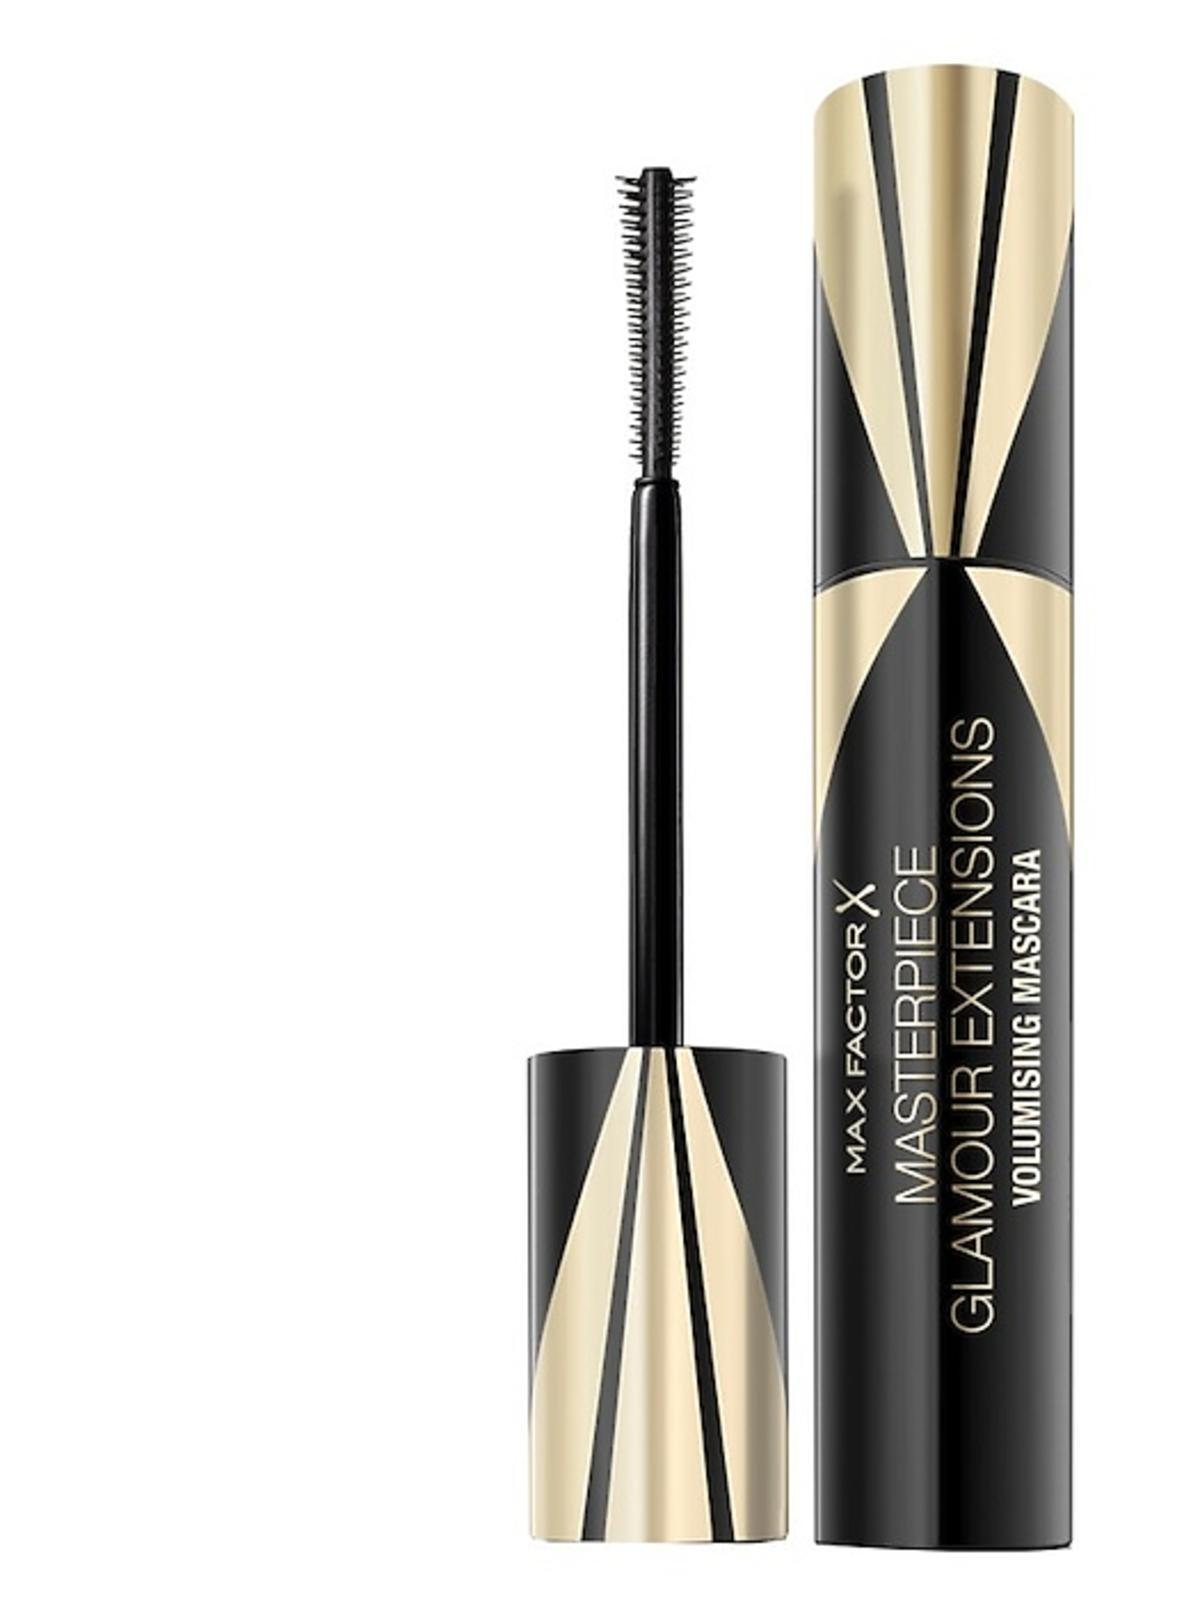 Mascara Masterpiece Glamour Extensions 3 in 1, Max Factor, ok. 60 zł